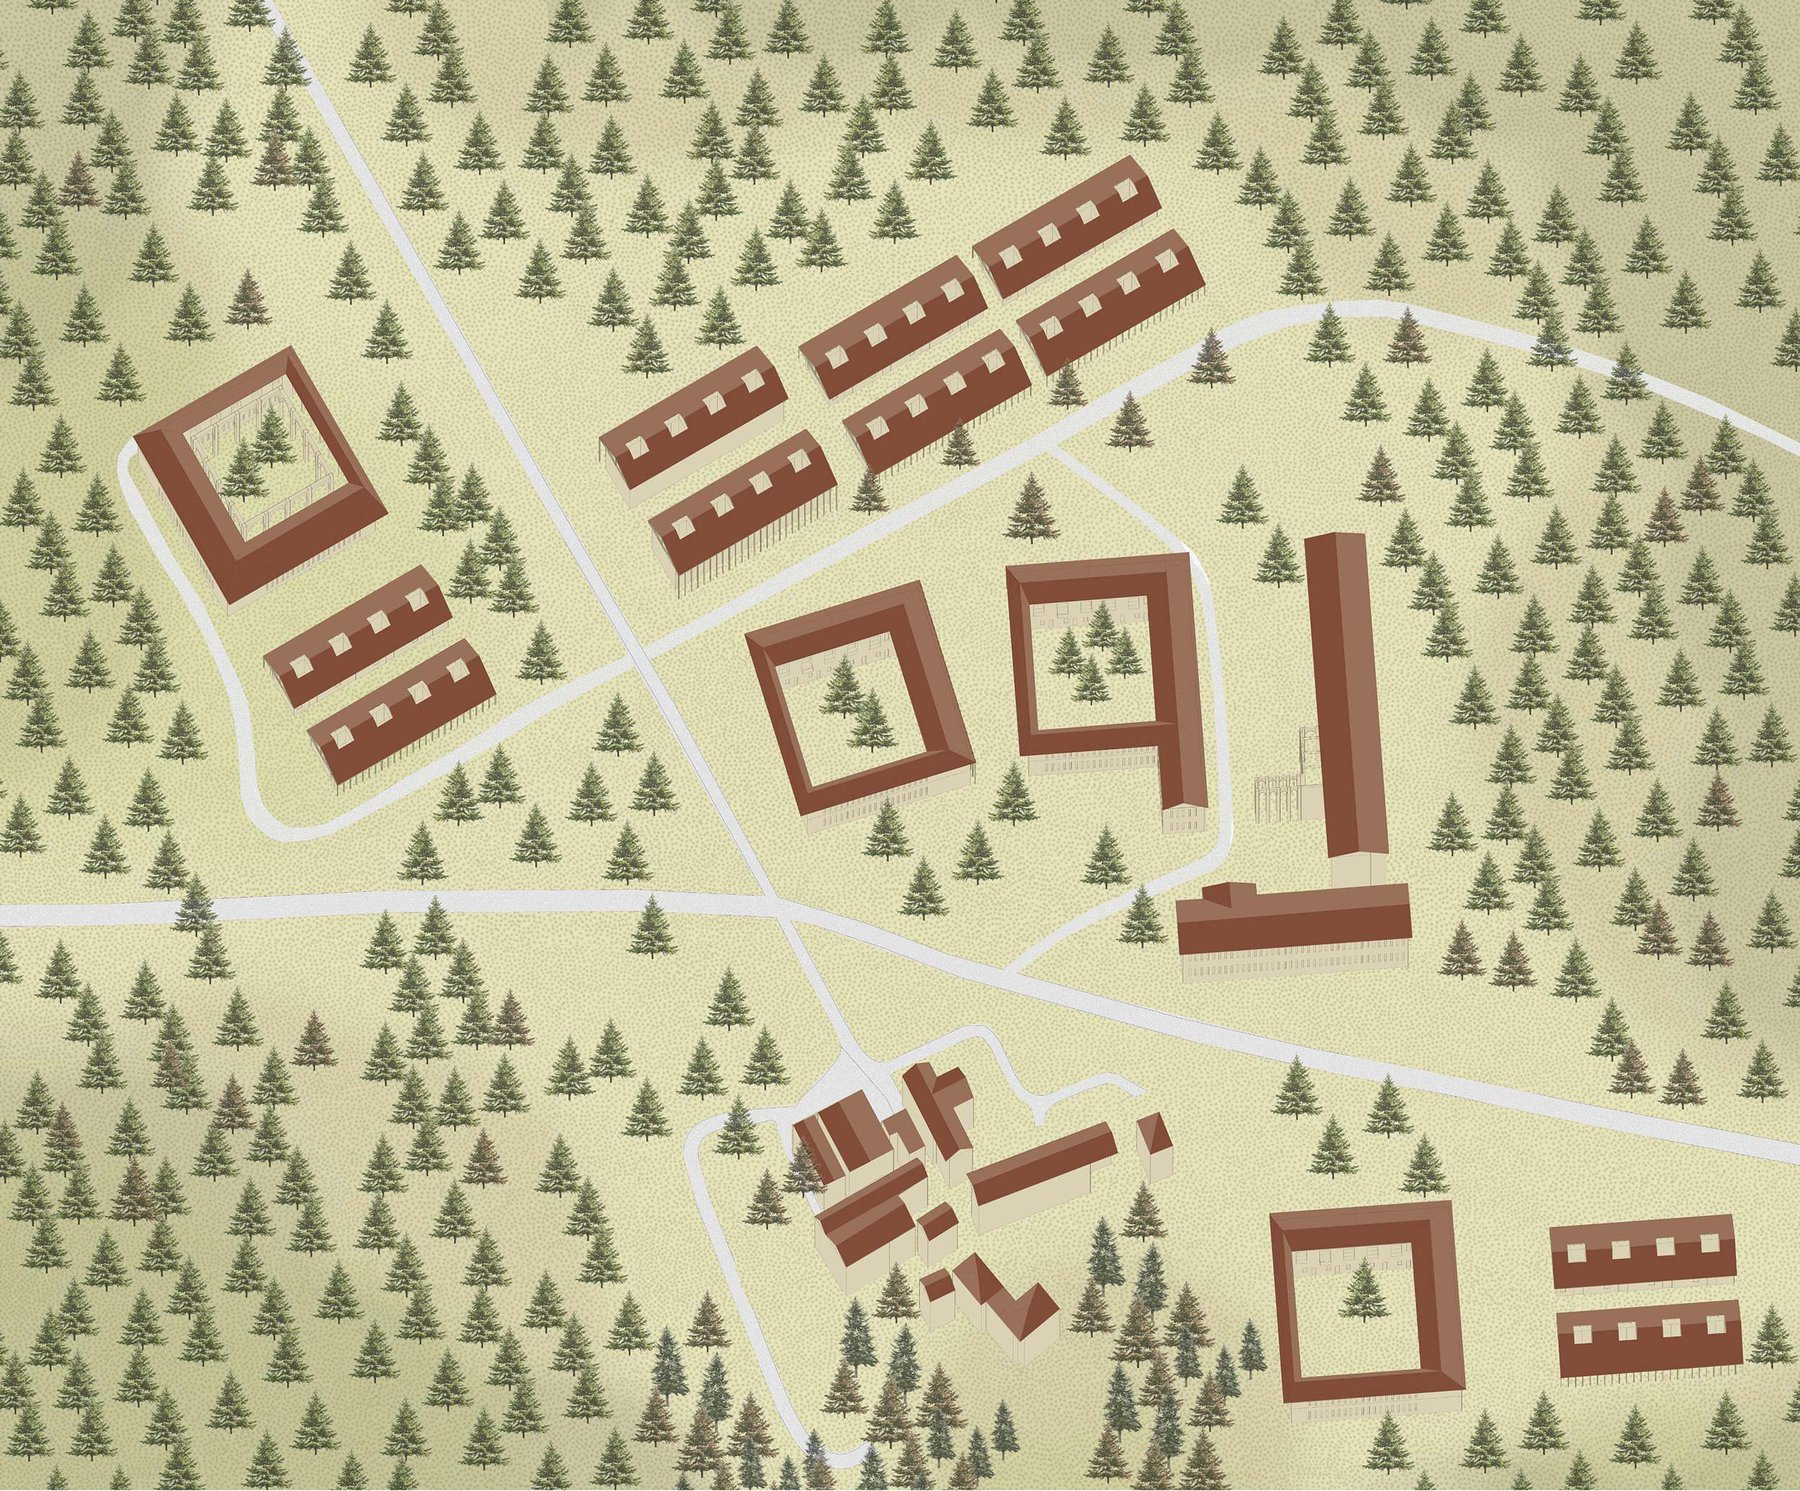 Karolina-Pawlowska,-Aerial-View-of-Proposed-Housing-Within-the-Managed-Forest.jpg